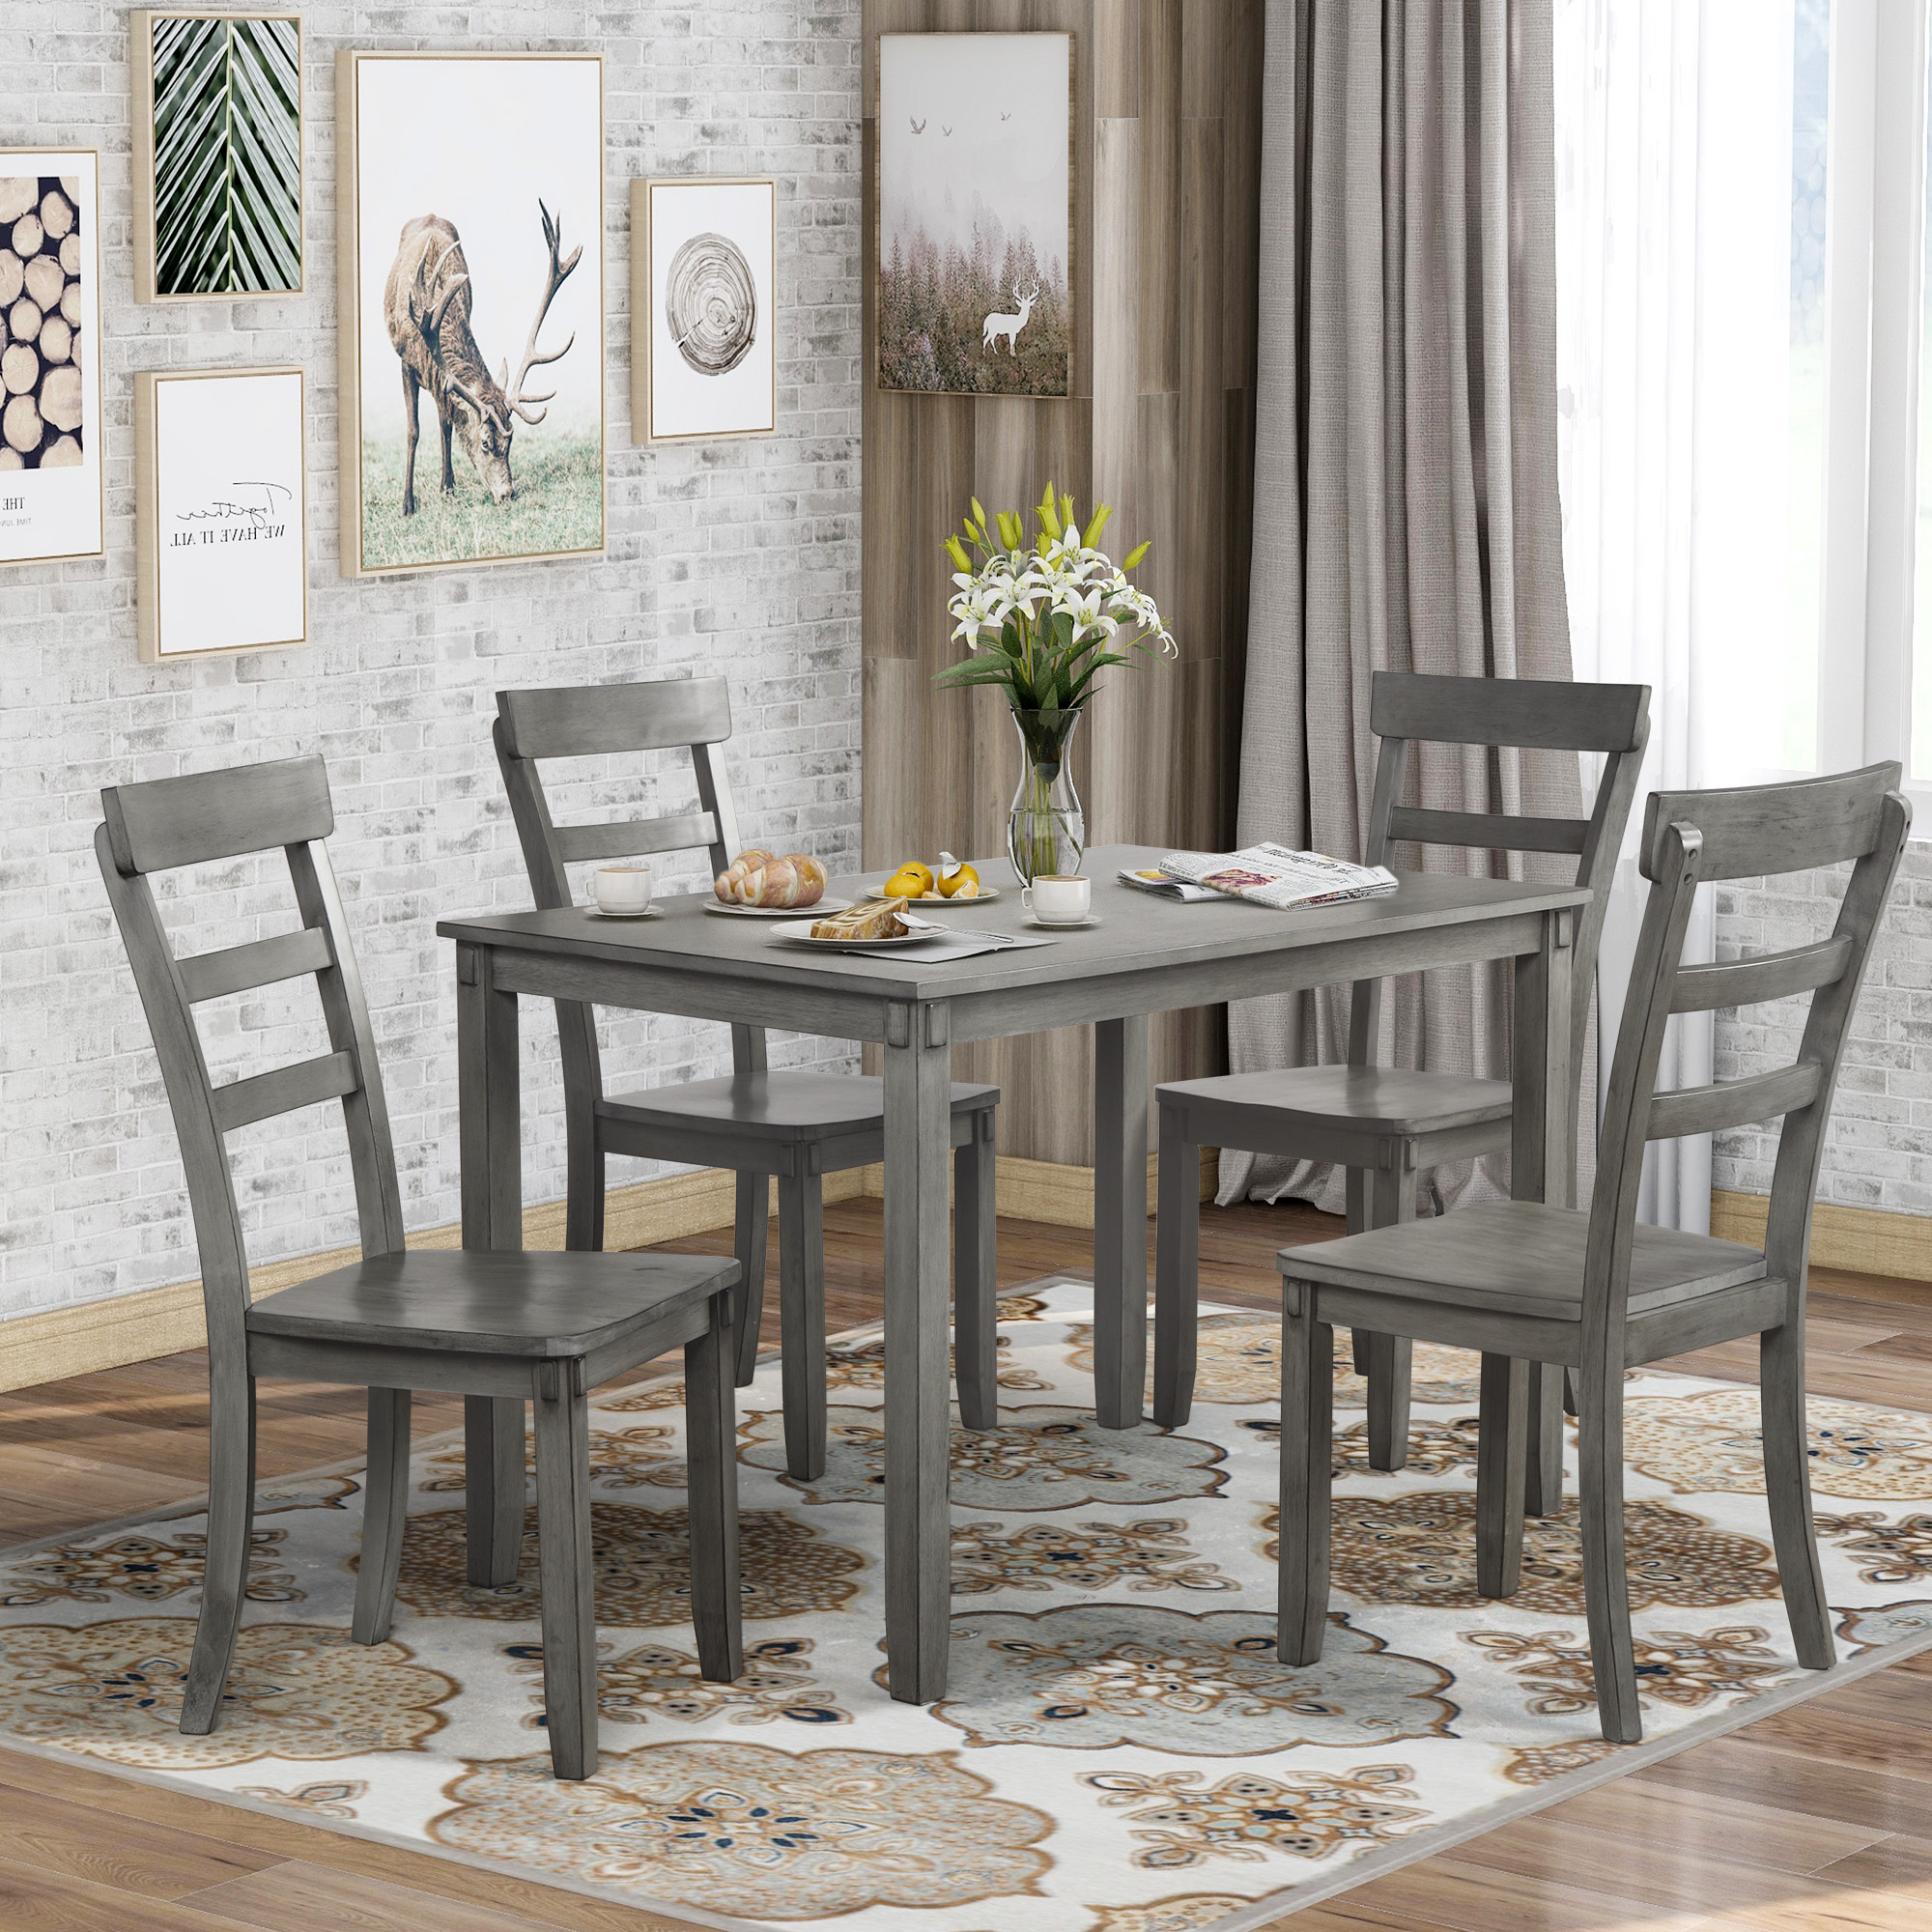 Enyopro 5 Piece Dining Table Set Square Kitchen Table With 4 Chairs Compact Dining Room Set Wood Home Kitchen Table And Chairs For 4 Person Ideal For Dining Room Apartment Small Space